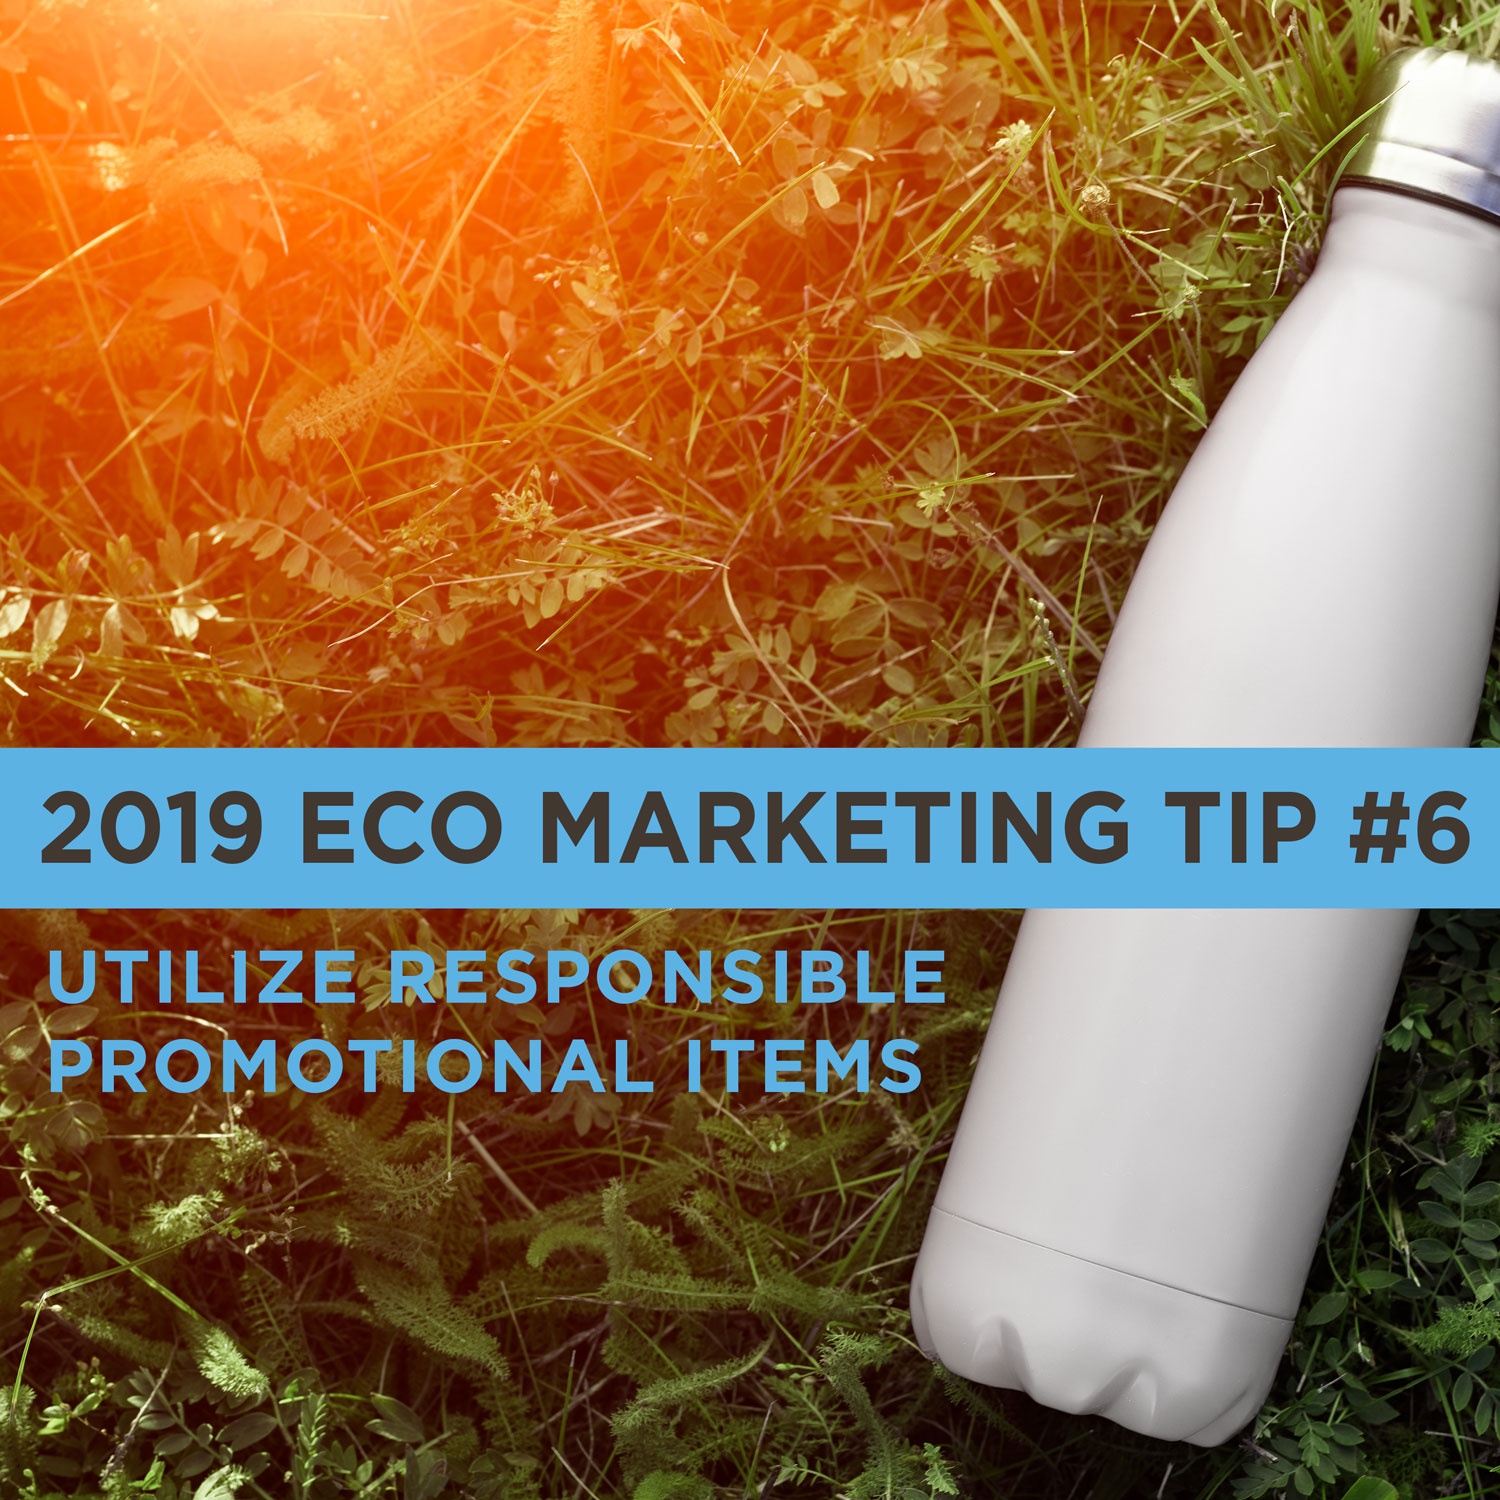 Eco Marketing Tip 6 is to Utilize responsible promotional items